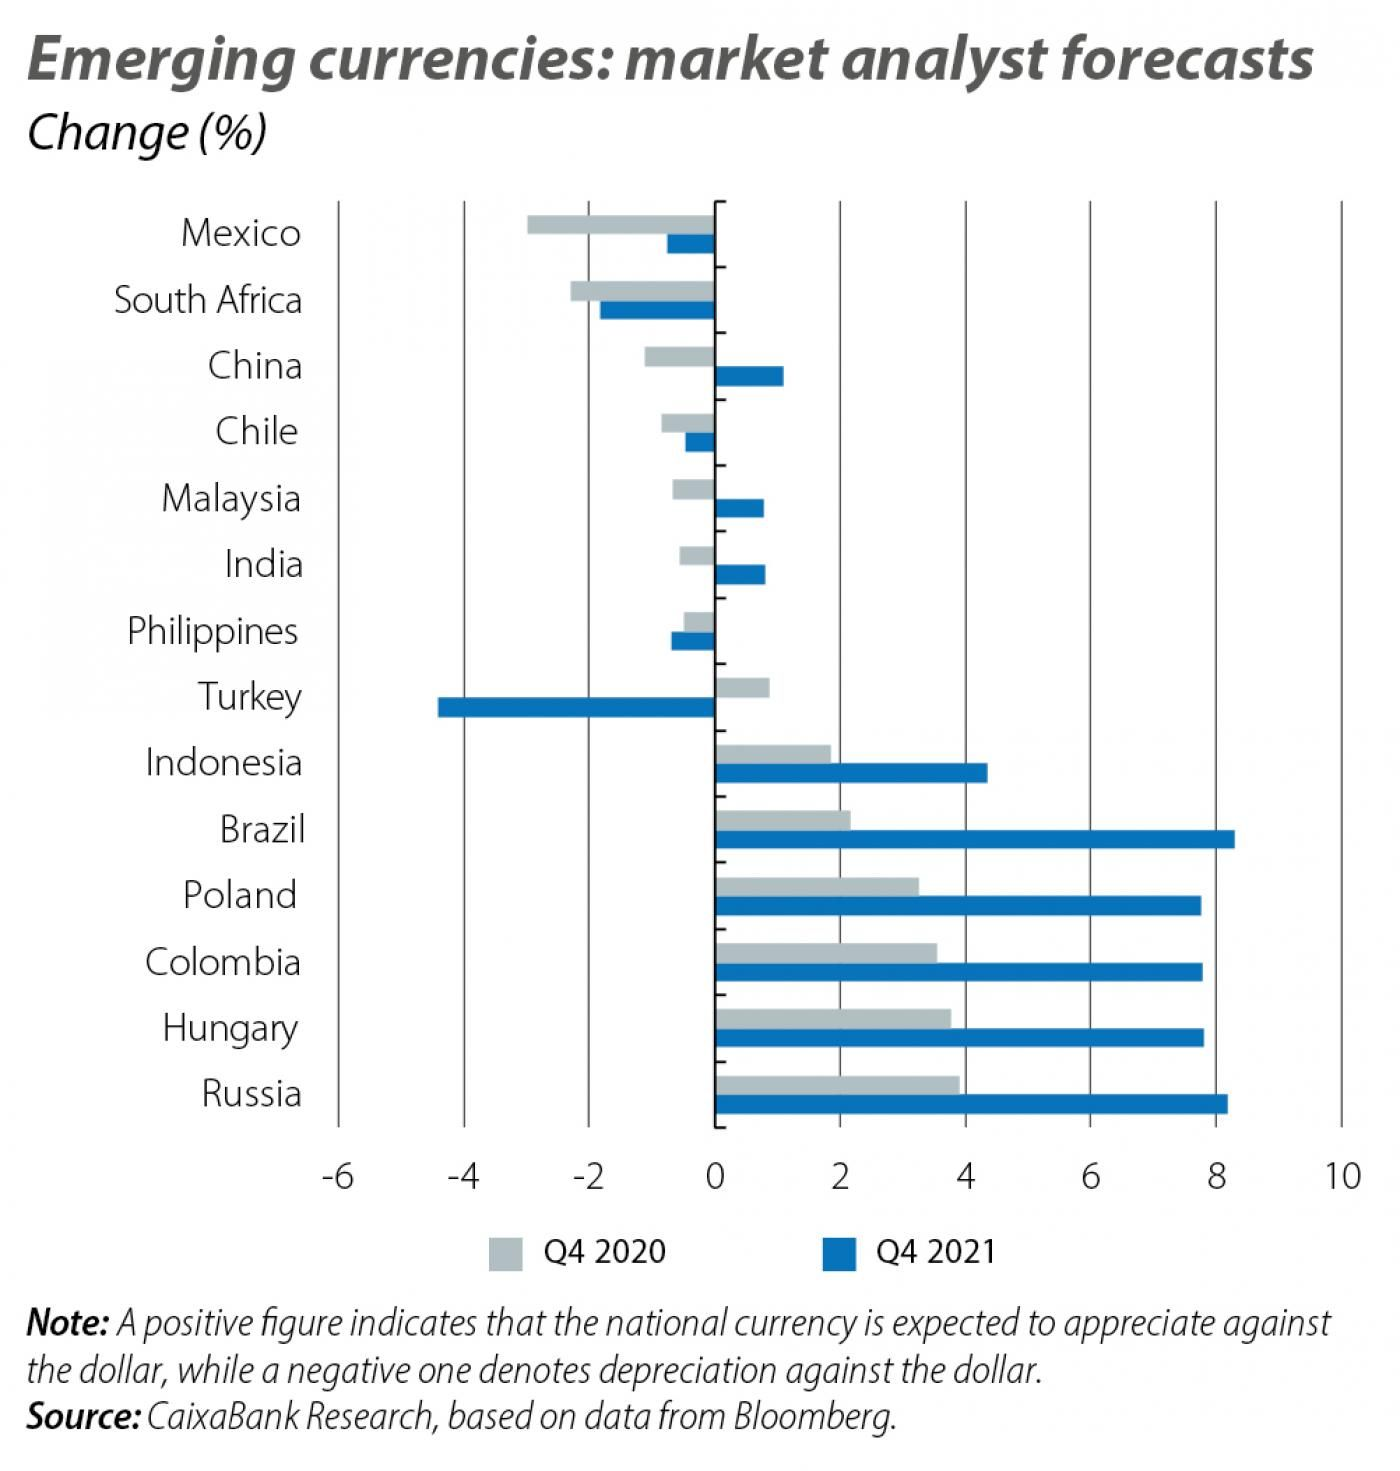 Emerging currencies: market analyst forecasts